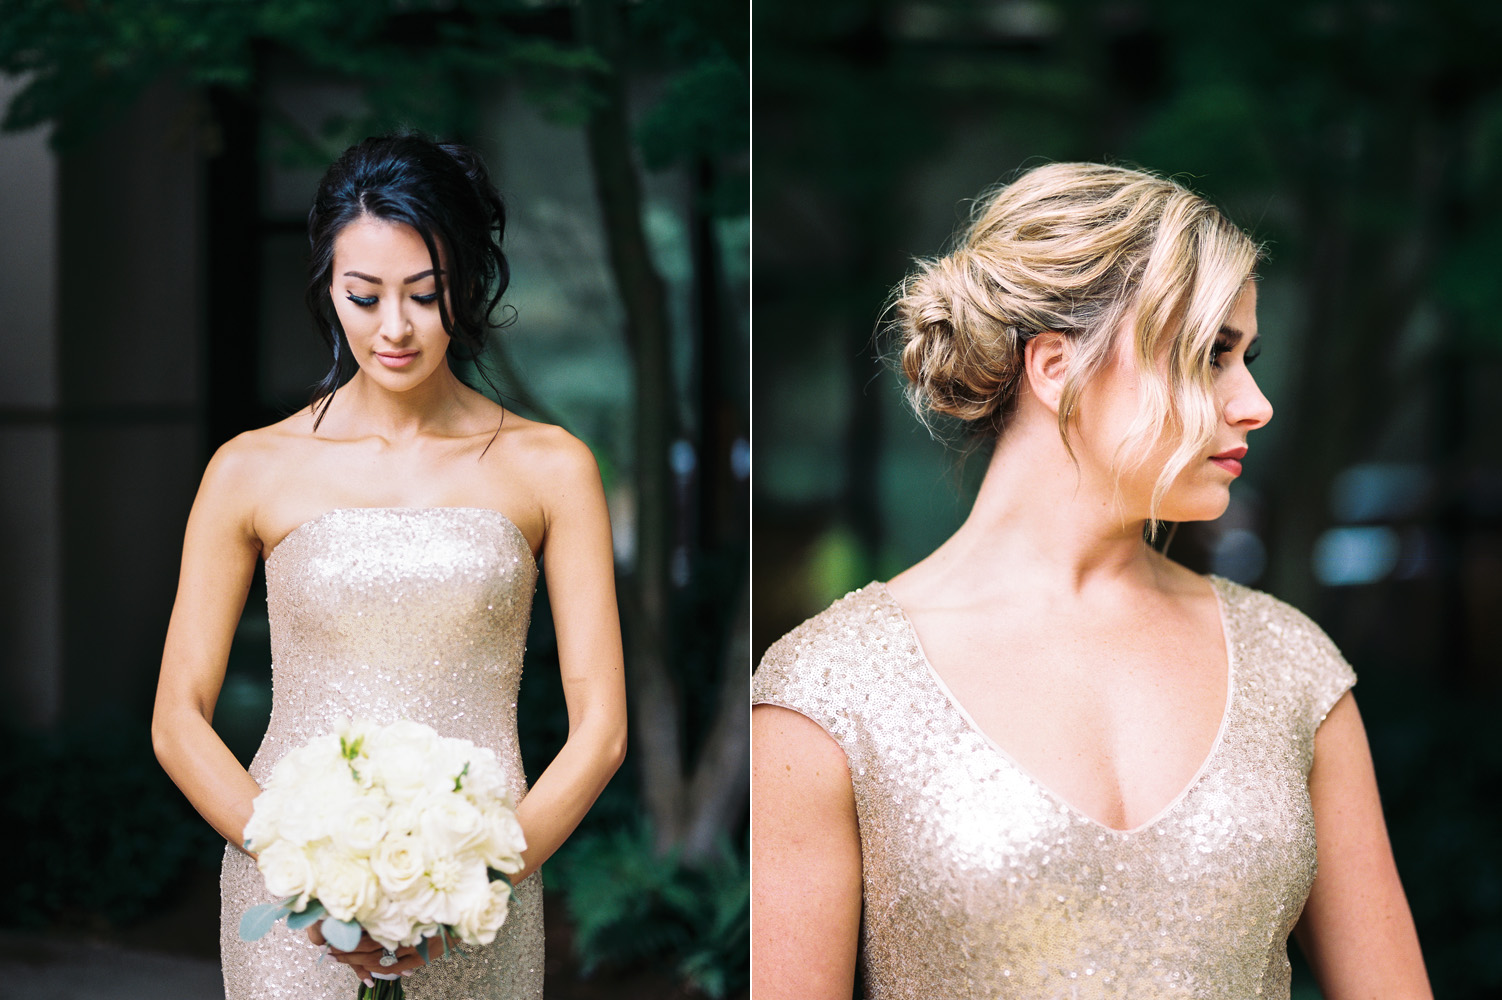 gold bridesmaid dresses seattle wedding details.jpg